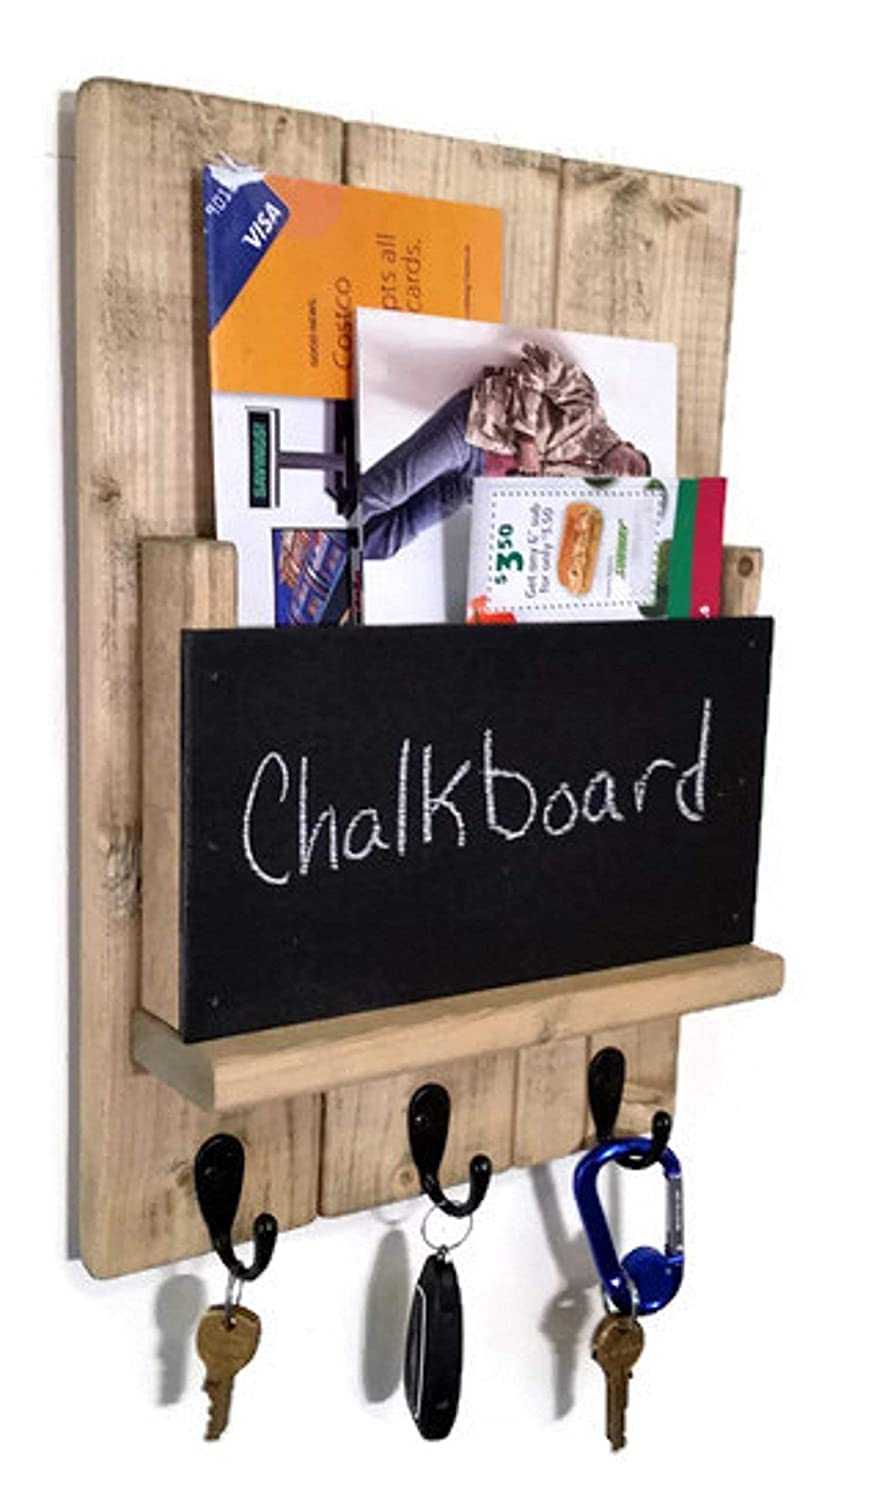 Sydney Chalkboard Front Mail Holder Organizer and Key Holder, Available with up to 3 key hooks and available in 20 different colors: Shown in Driftwood - Rustic Entryway Hooks